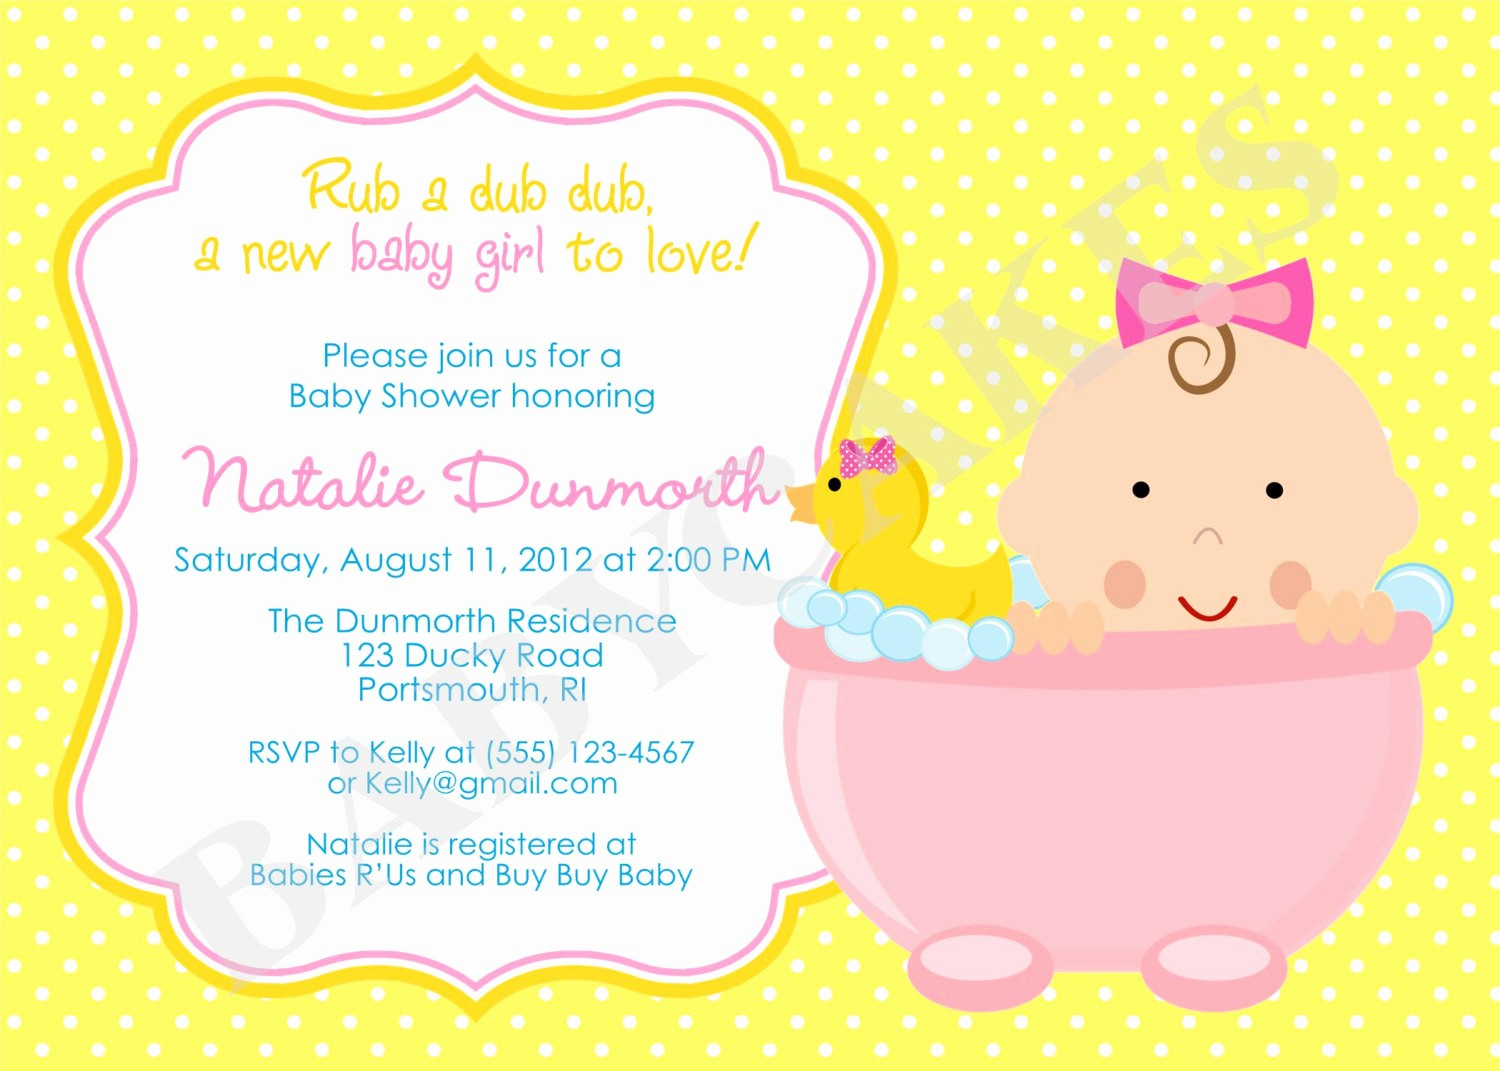 Baby Shower Invitation List Template Inspirational How to Plan Rubber Ducky Baby Shower Ideas